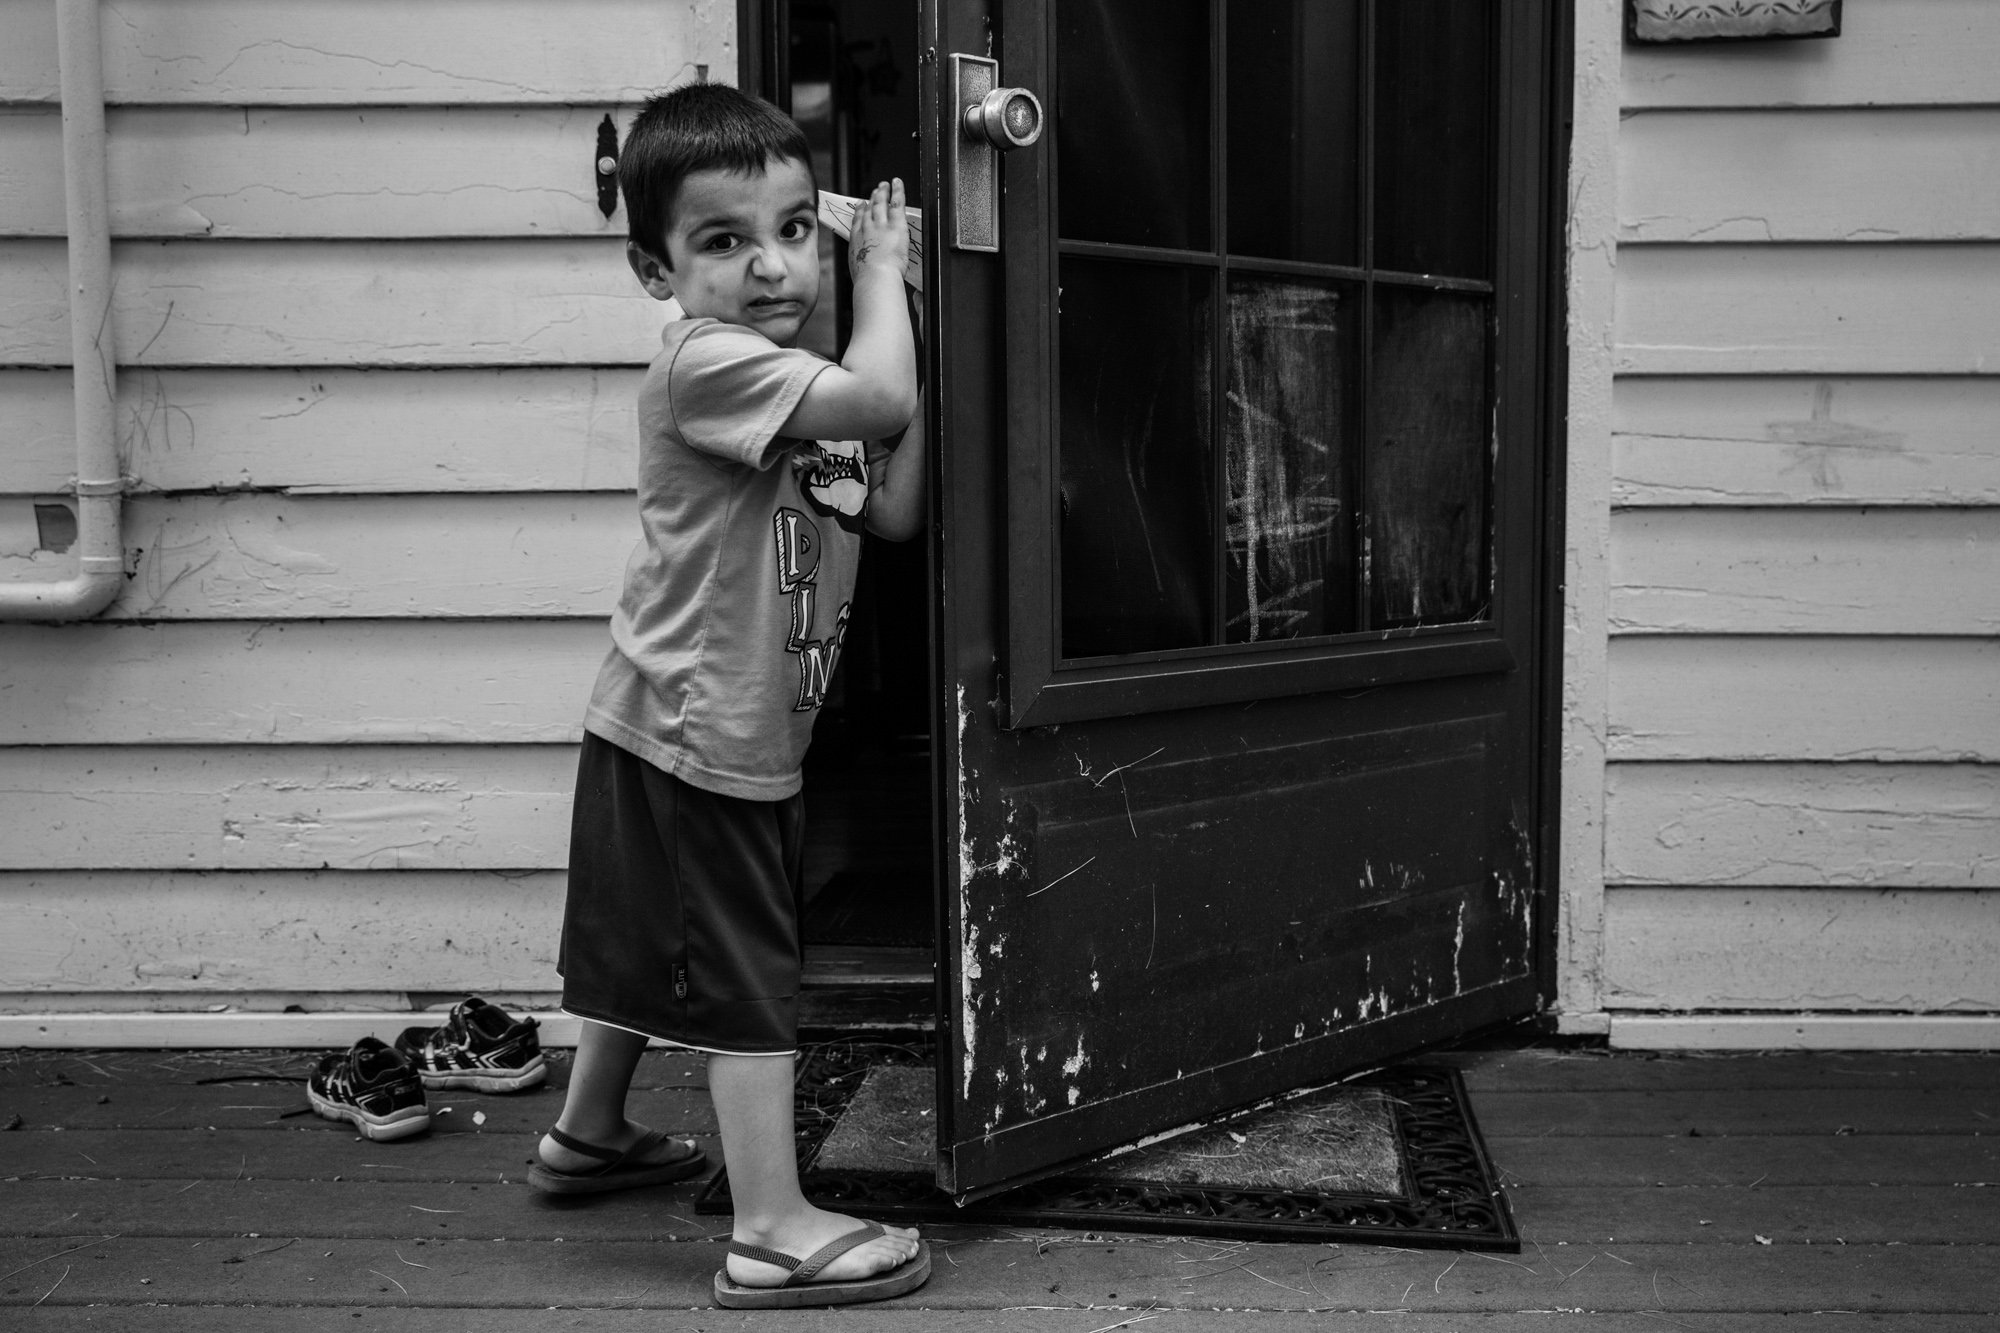 Boy grimaces while holding open a door